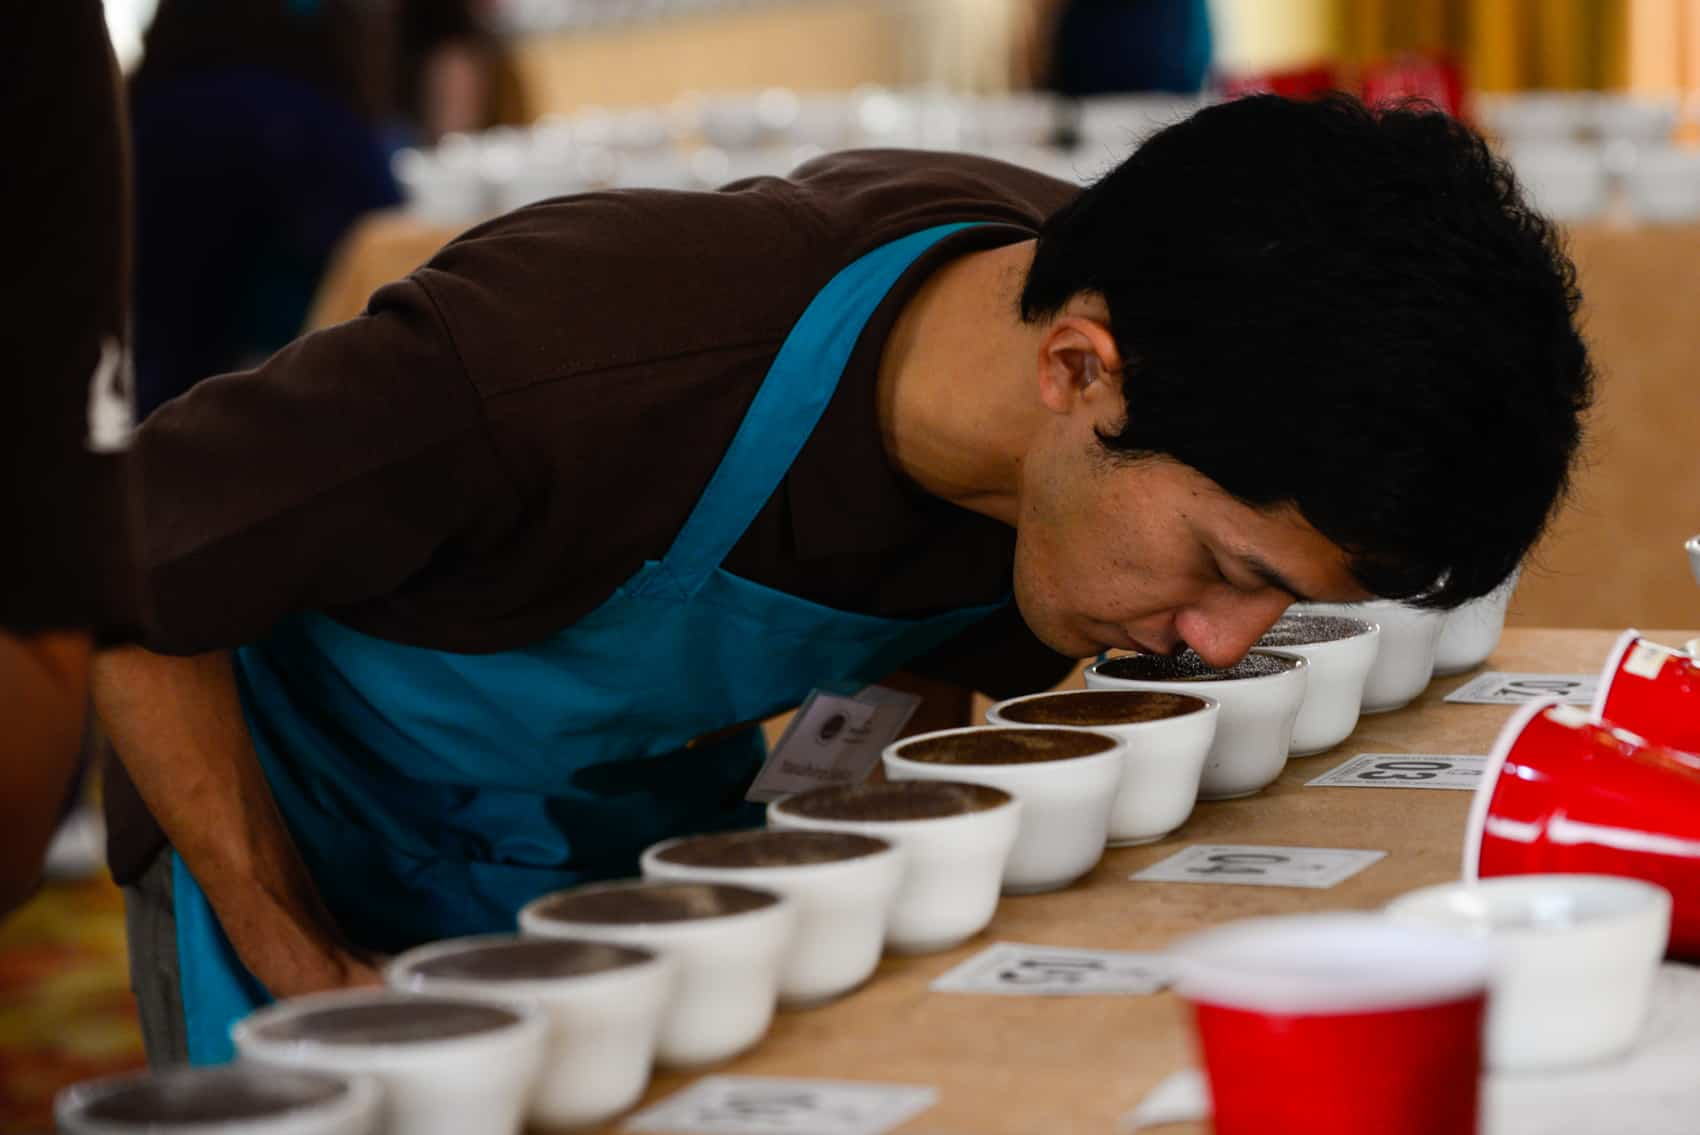 Coffee judging